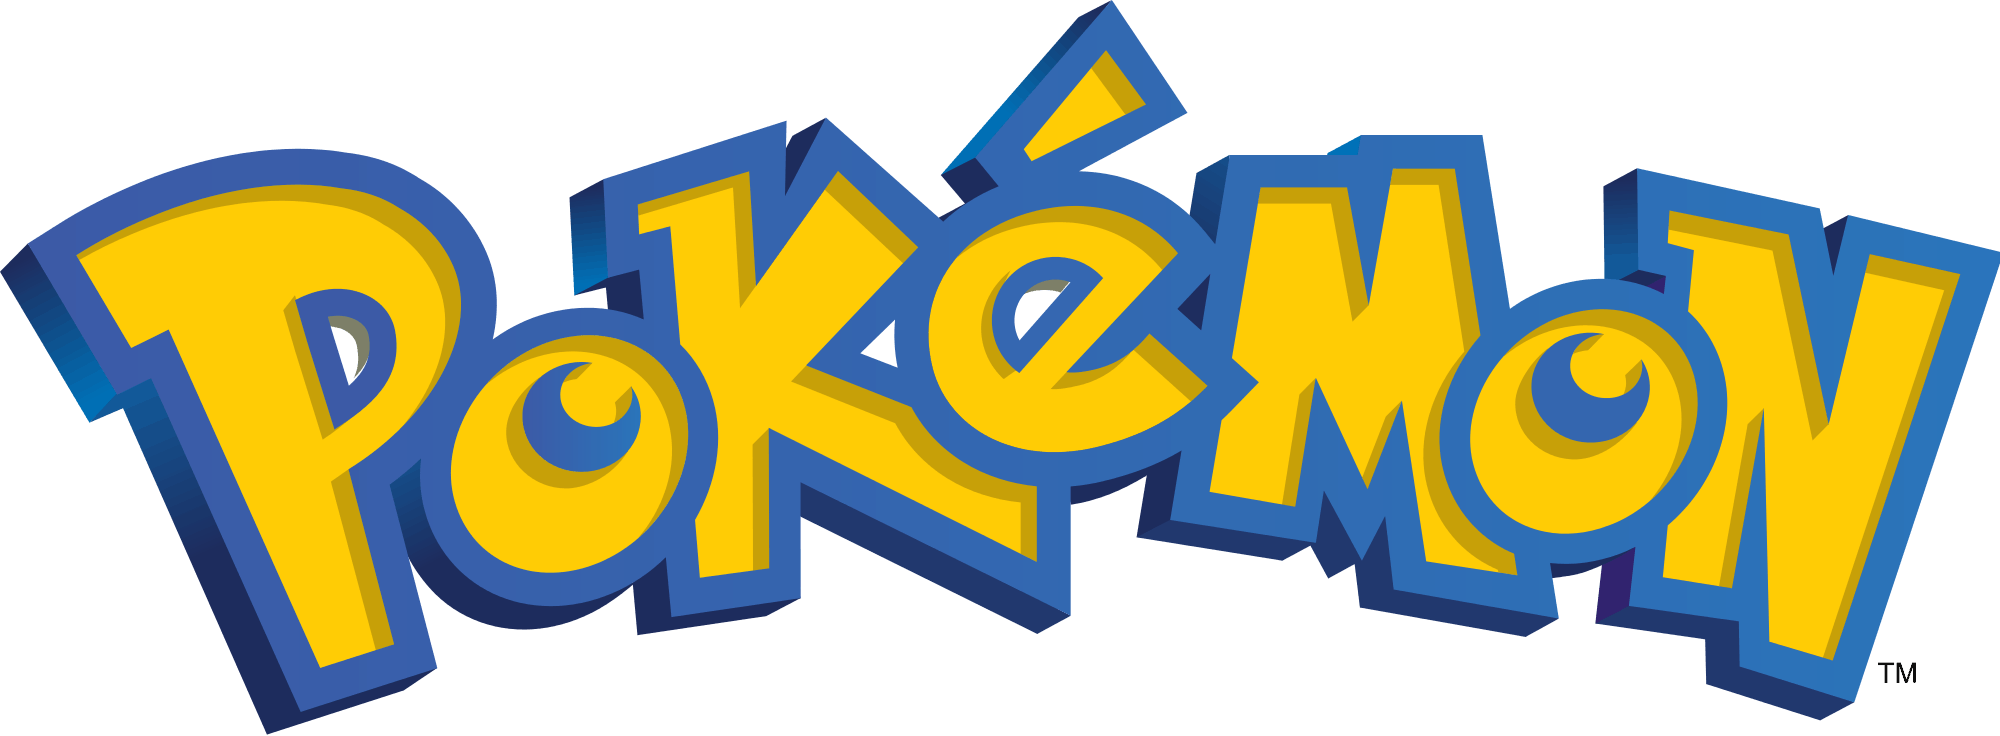 Pokemon yellow logo png. Nintendo switch to be